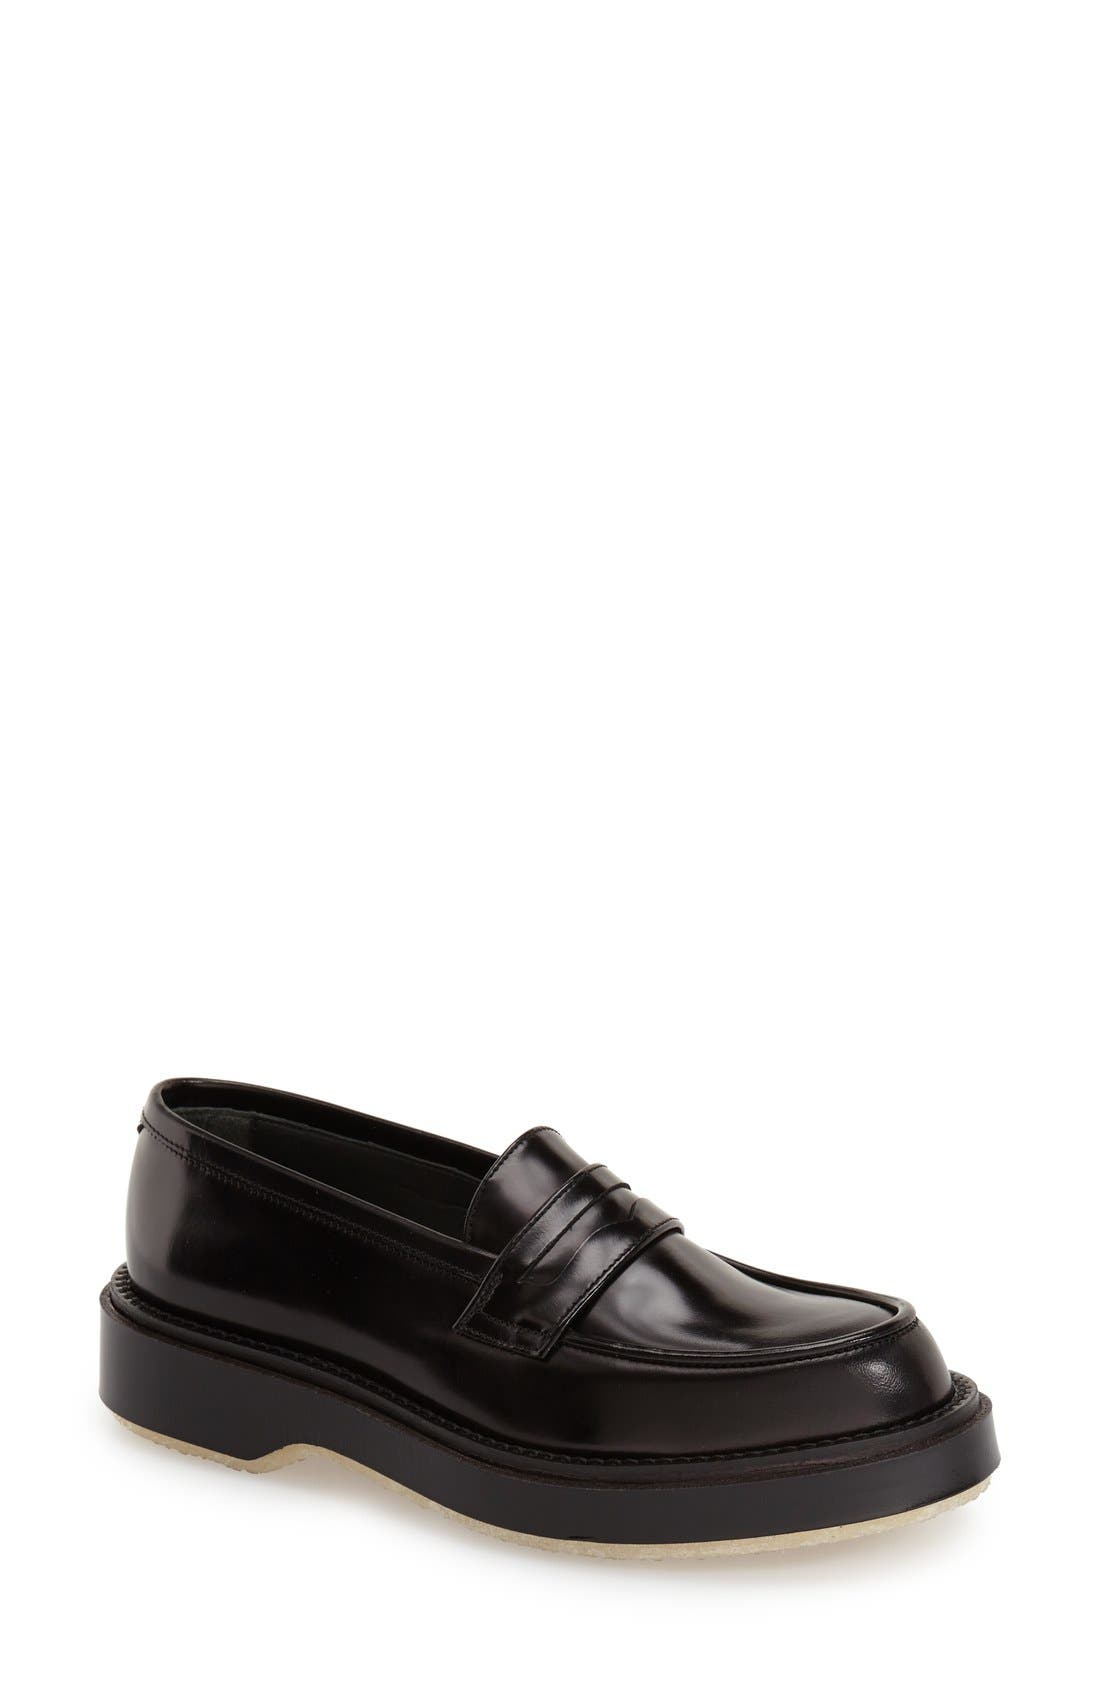 Main Image - Adieu Calfskin Leather Penny Loafer (Women)